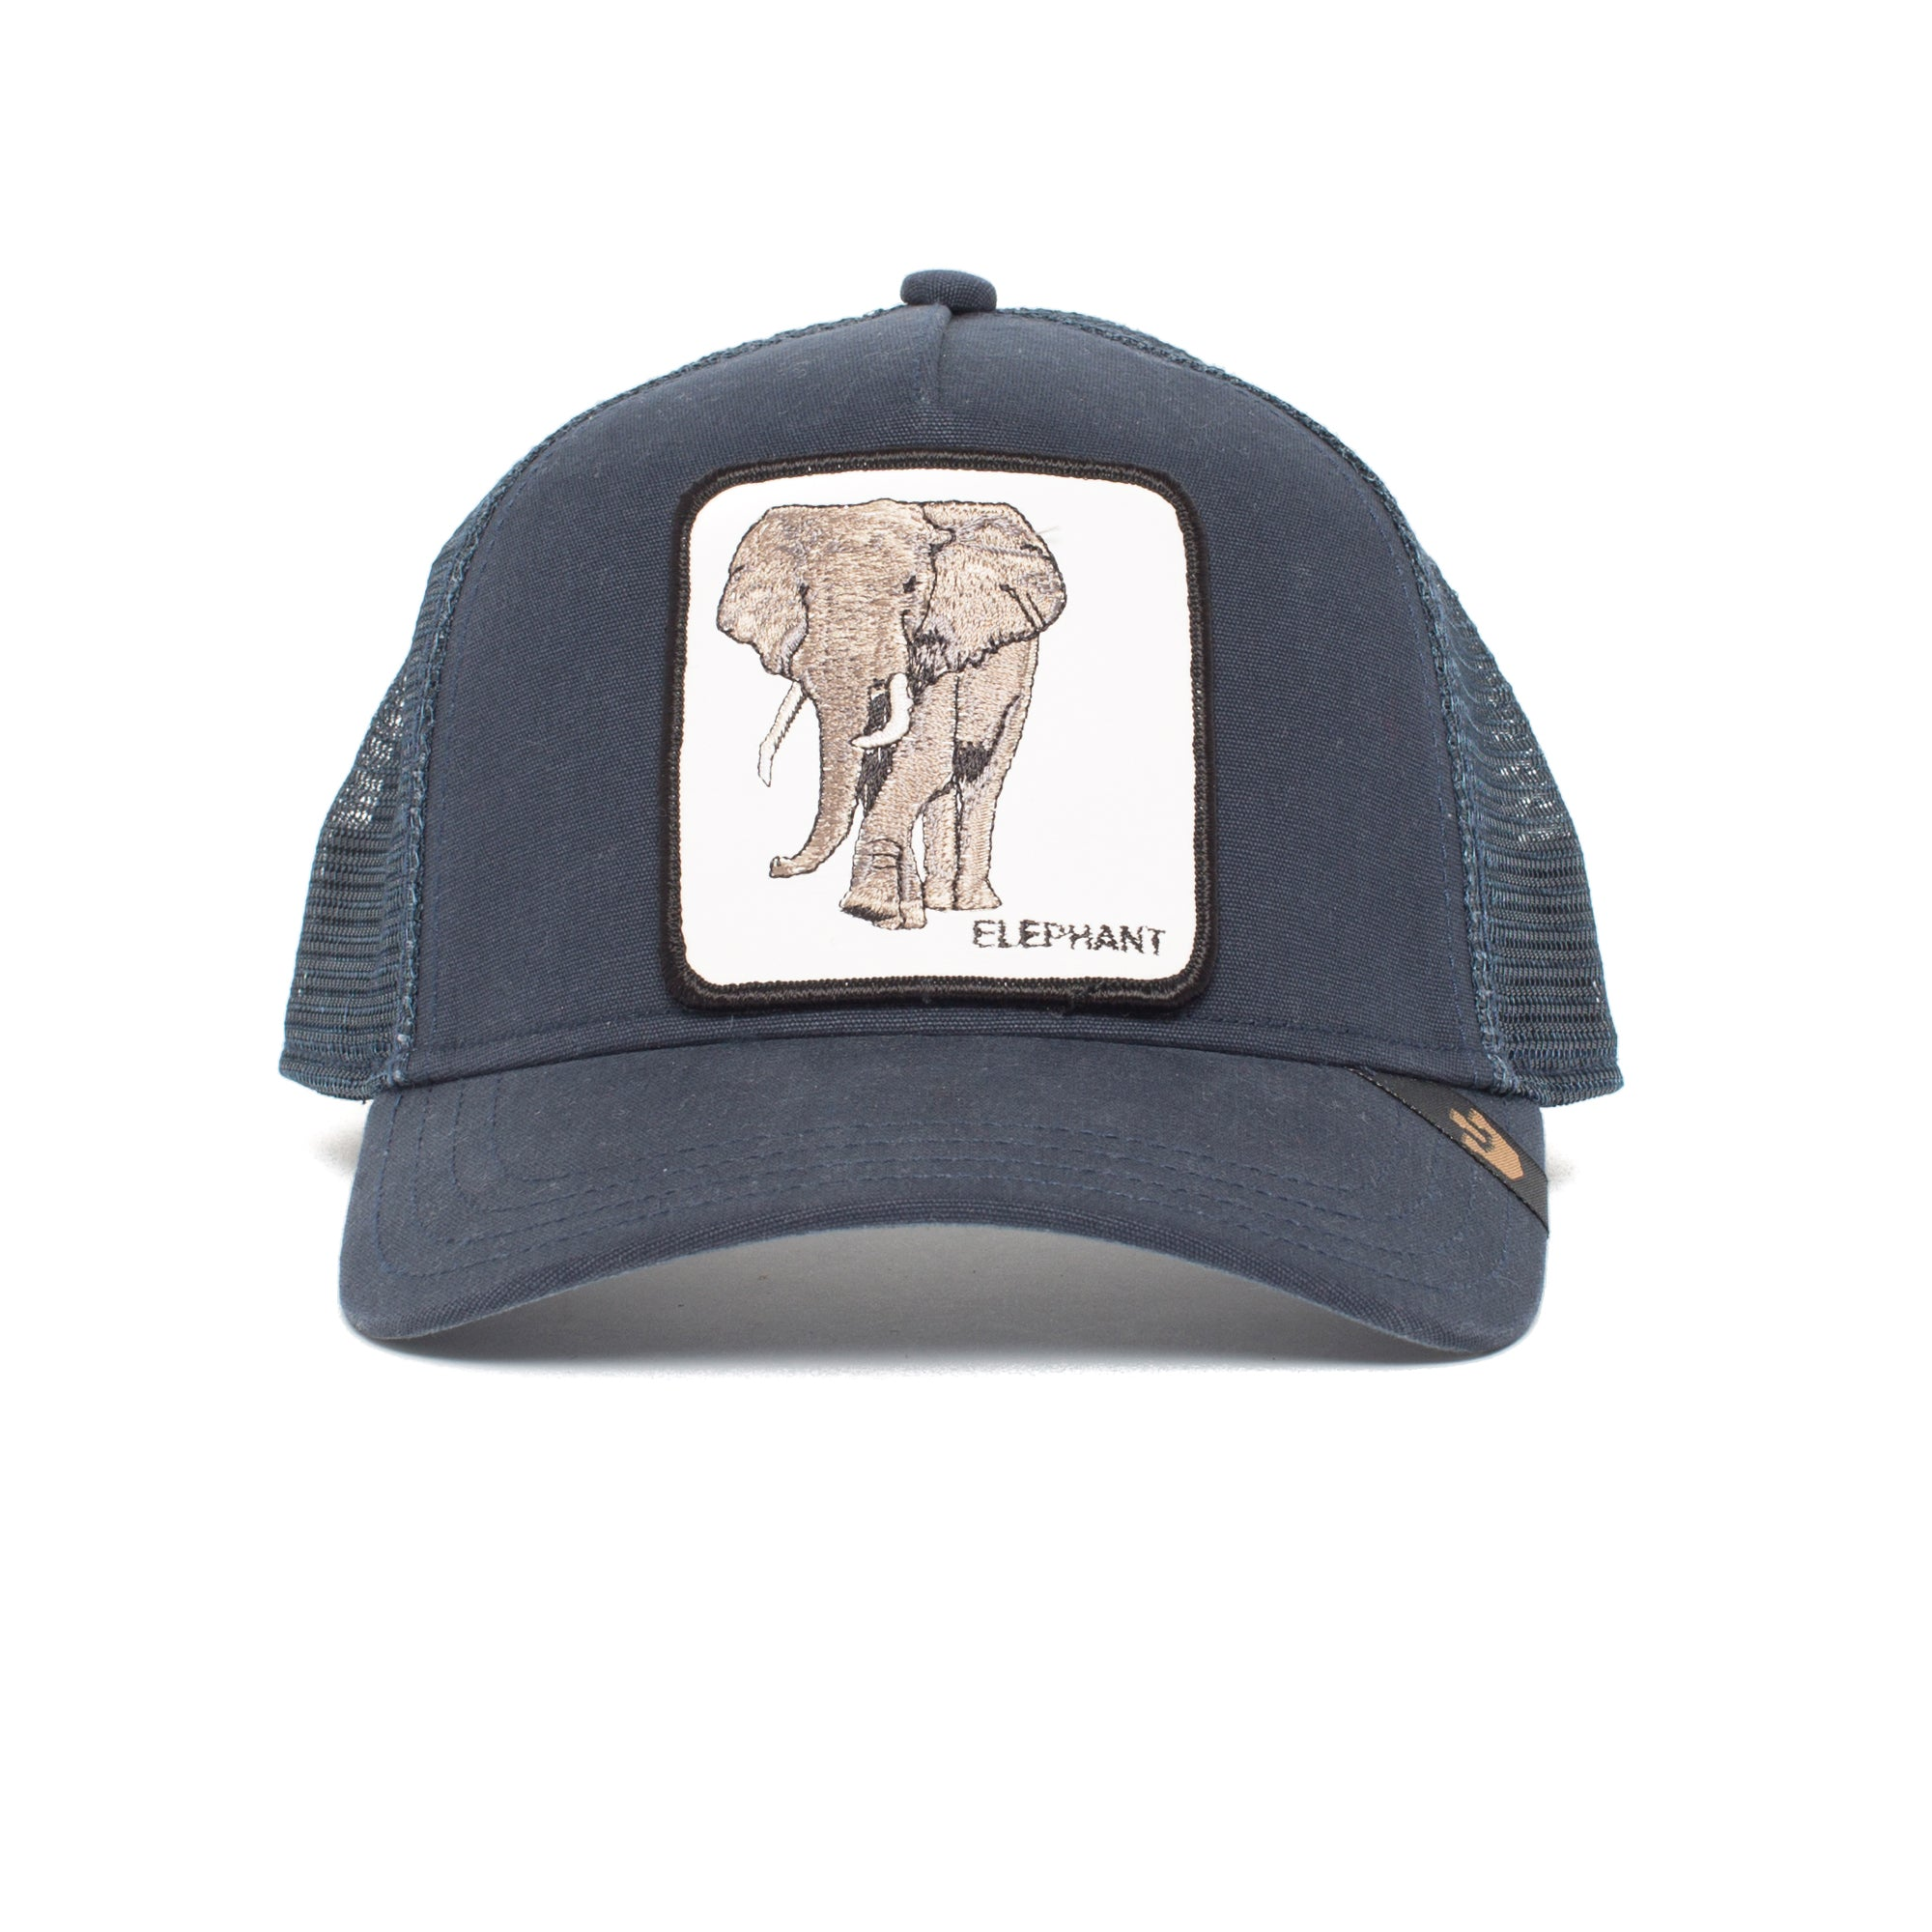 Goorin Bros. elephant 5 panel trucker baseball cap Navy front view